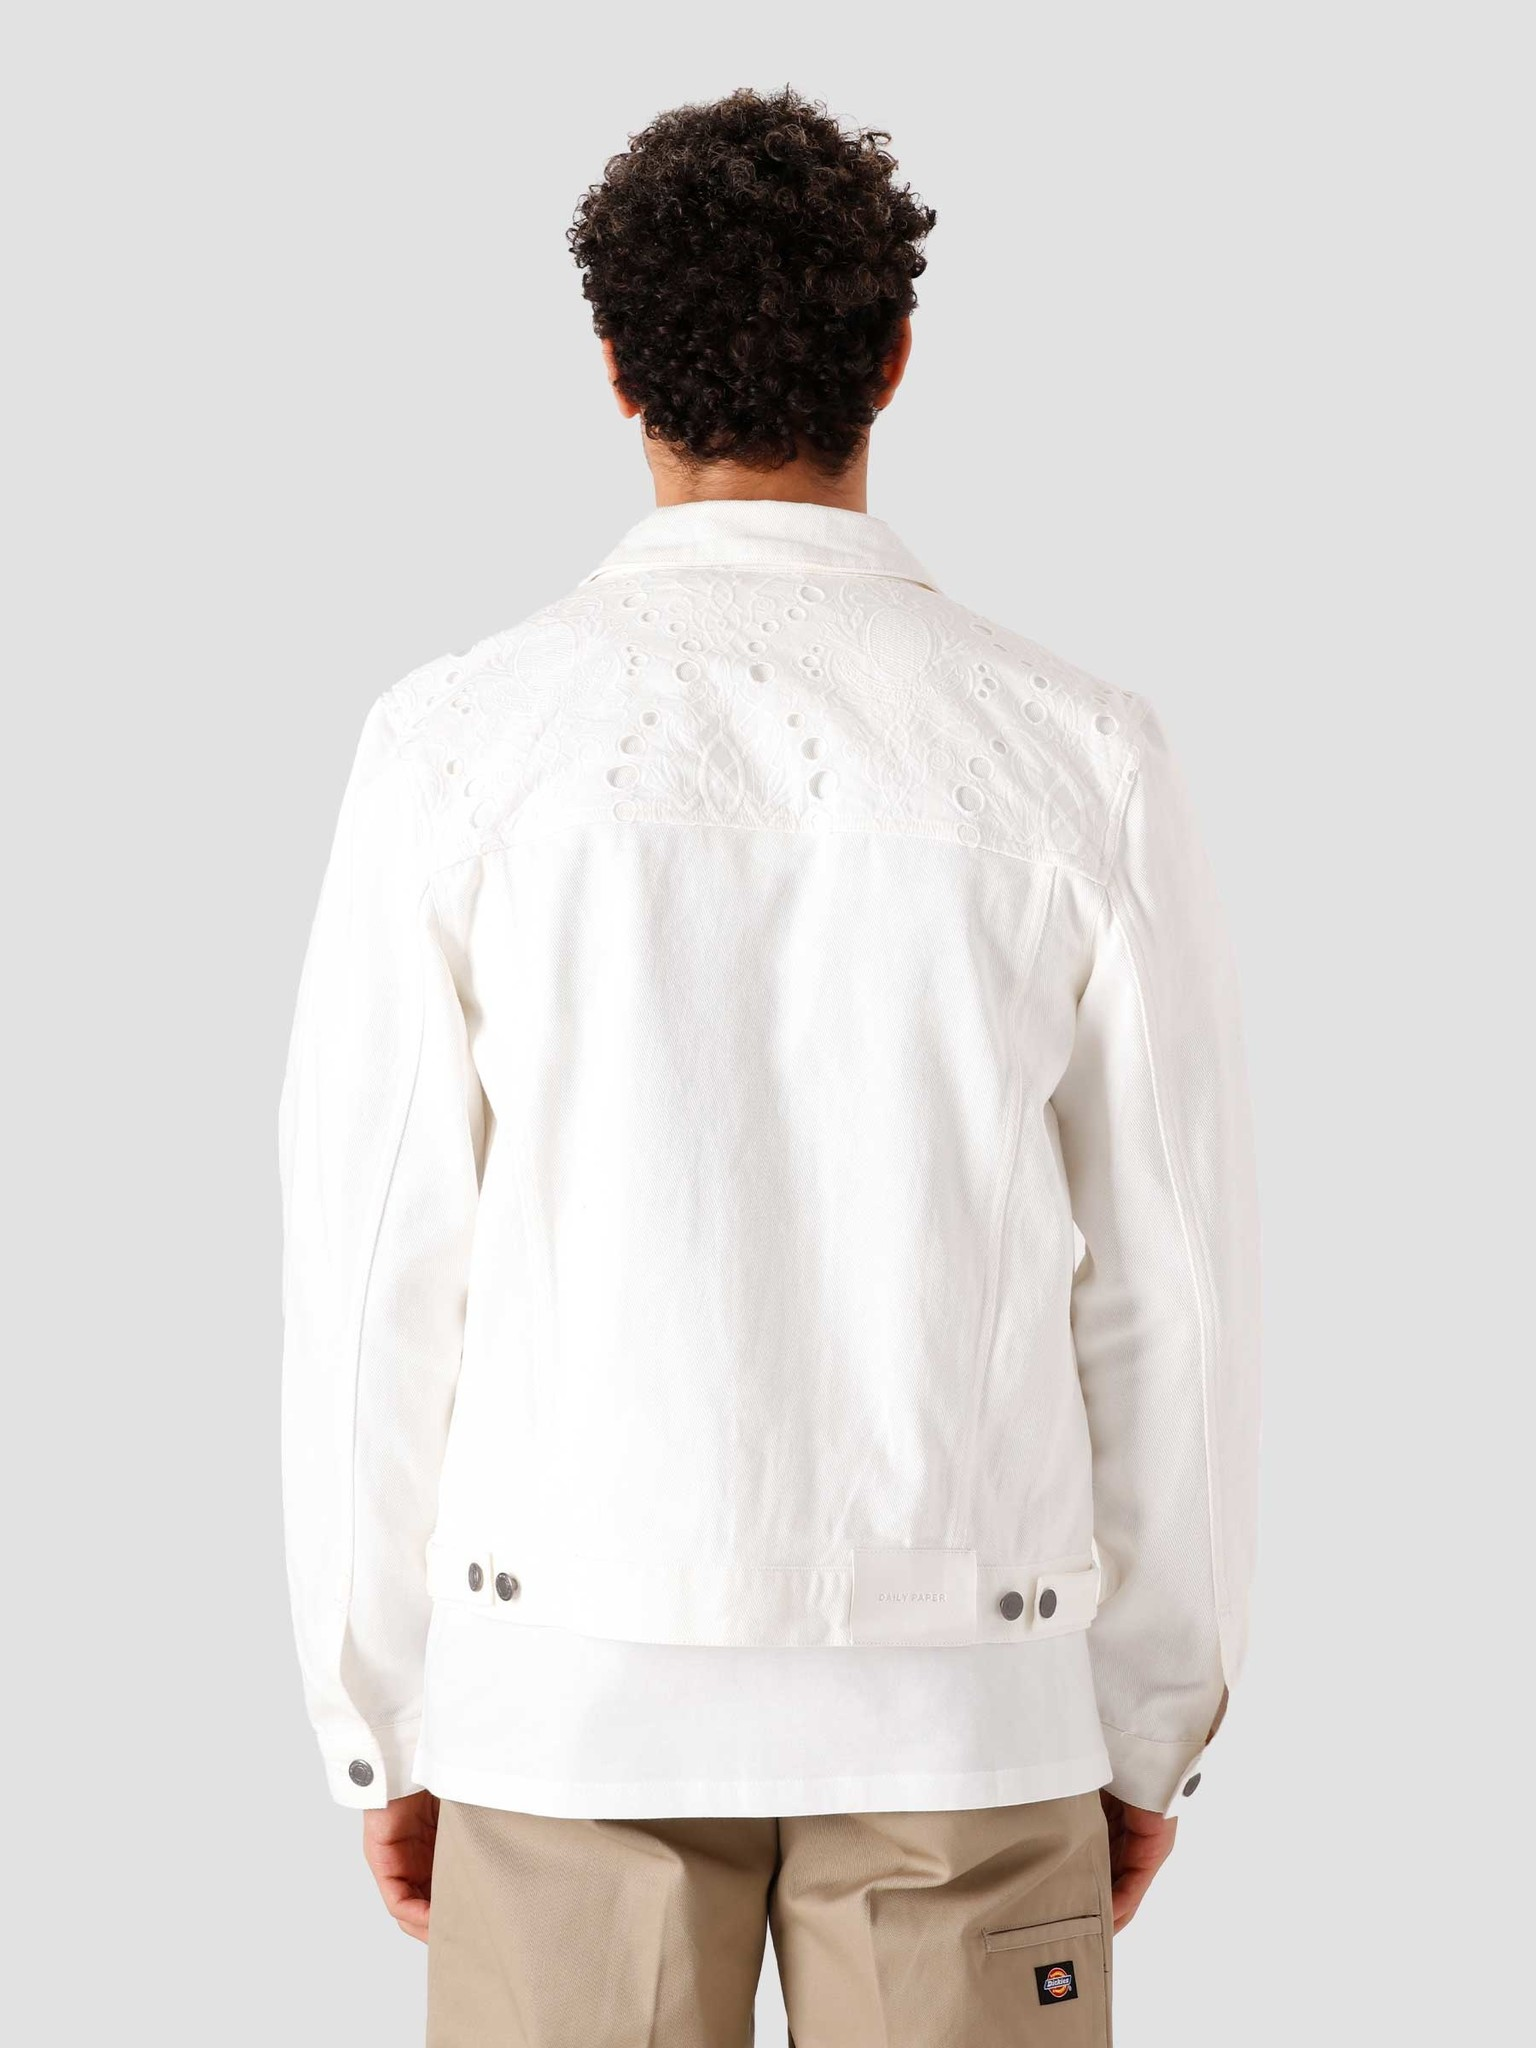 Daily Paper Daily Paper Kajean Jeans Jacket White 2111153